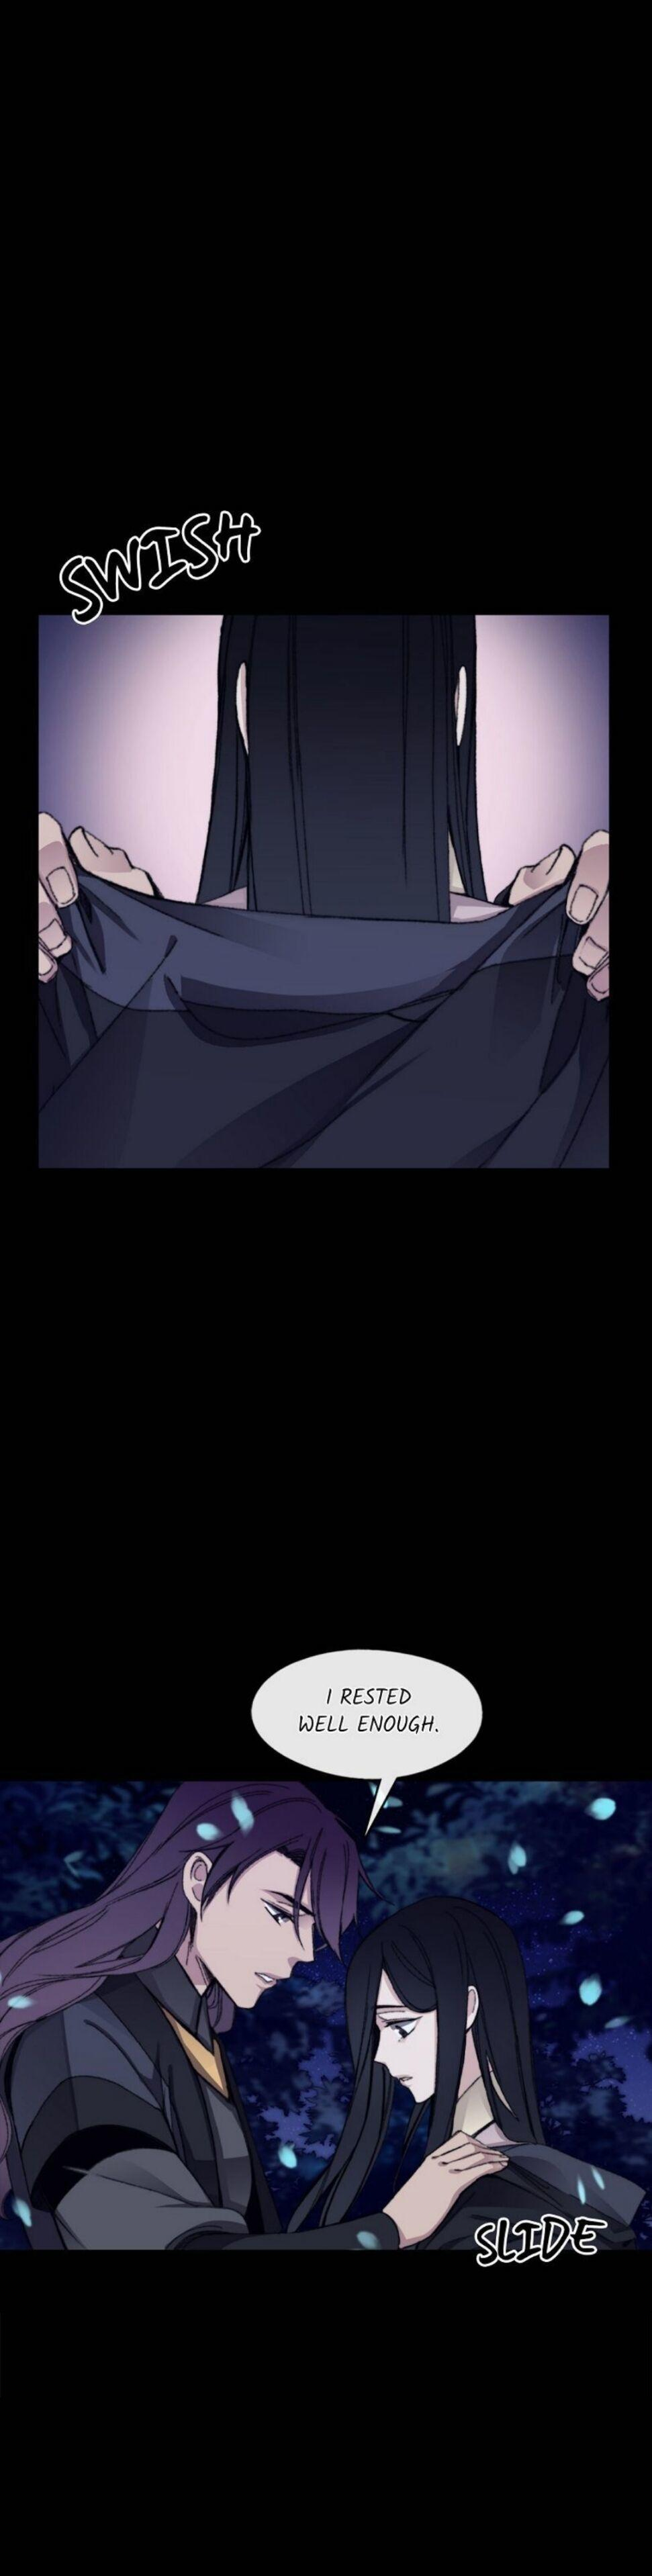 The Emperor'S Lover Chapter 19 page 28 - Mangakakalots.com